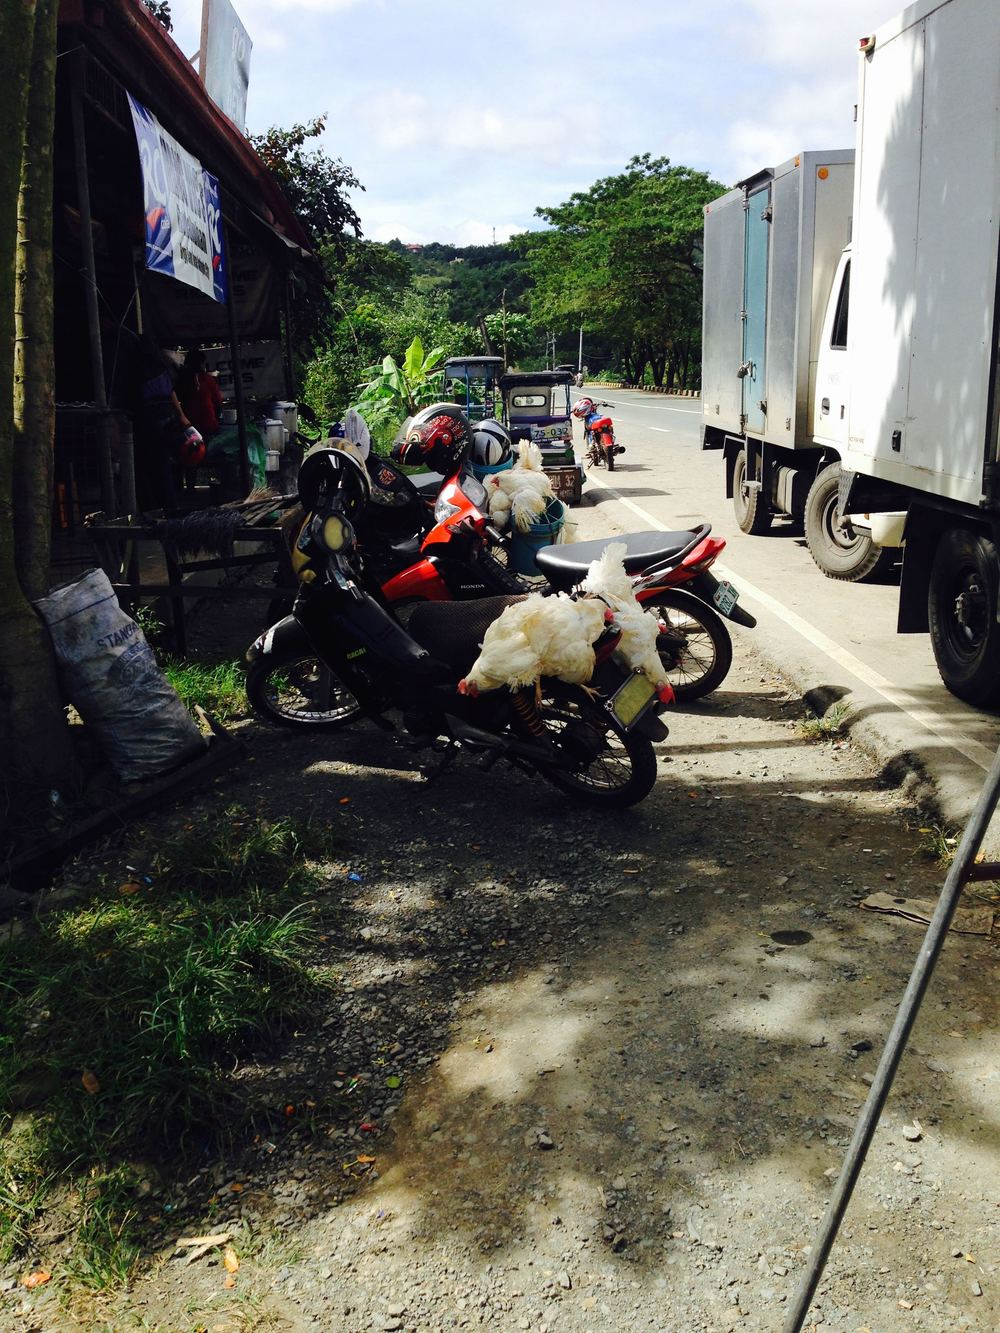 Motorcycles parked at a carinderia (after the drivers bought live chickens in the market)